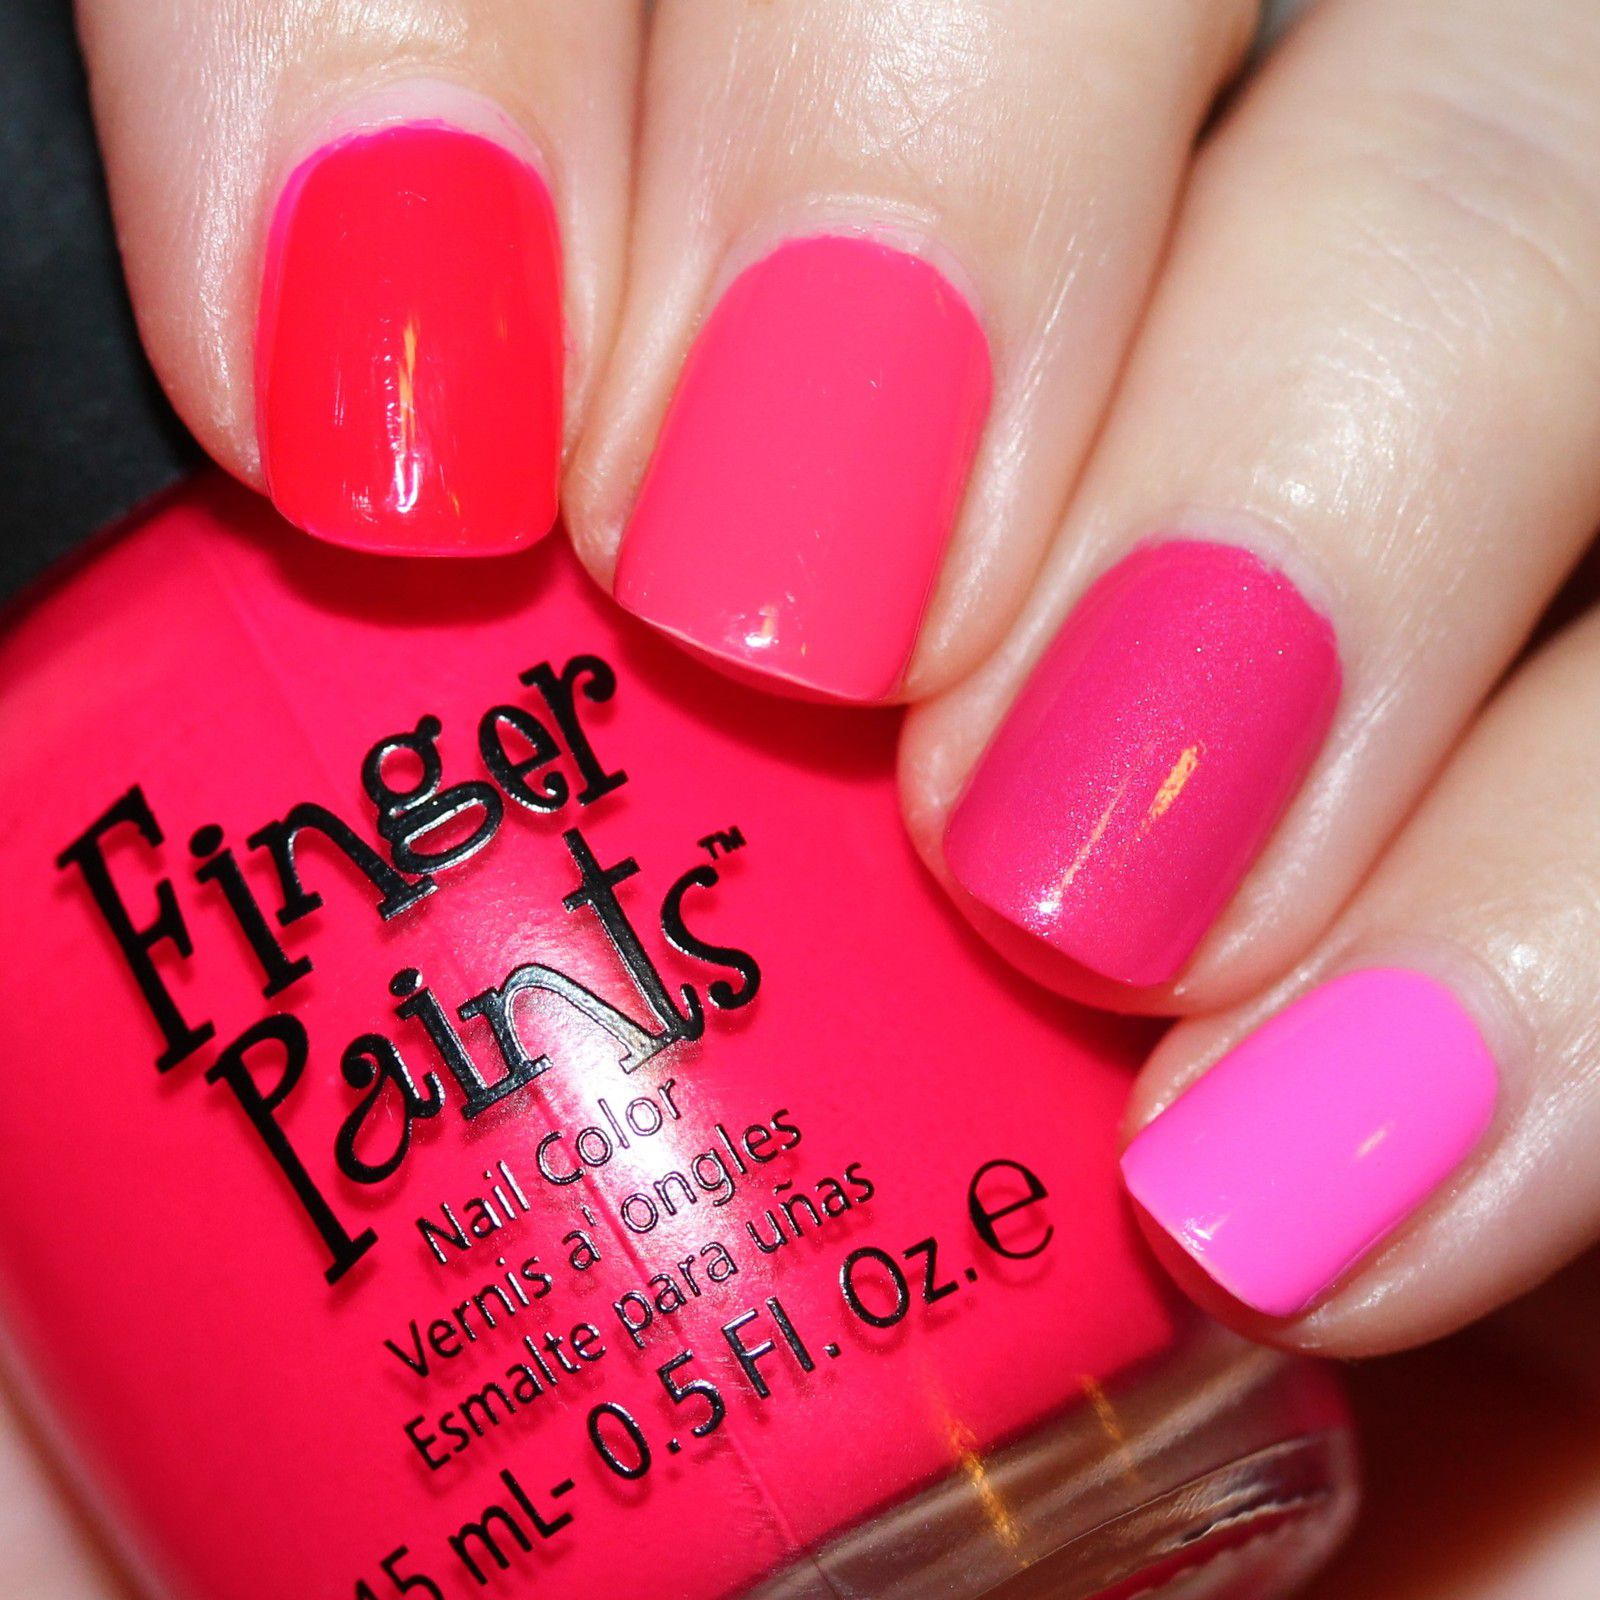 Essie Protein Base Coat / LA Girls Desire, Rio & Eden / Finger Paints Pink Perspective & A-Cry-Lic A Girl / Poshe Top Coat